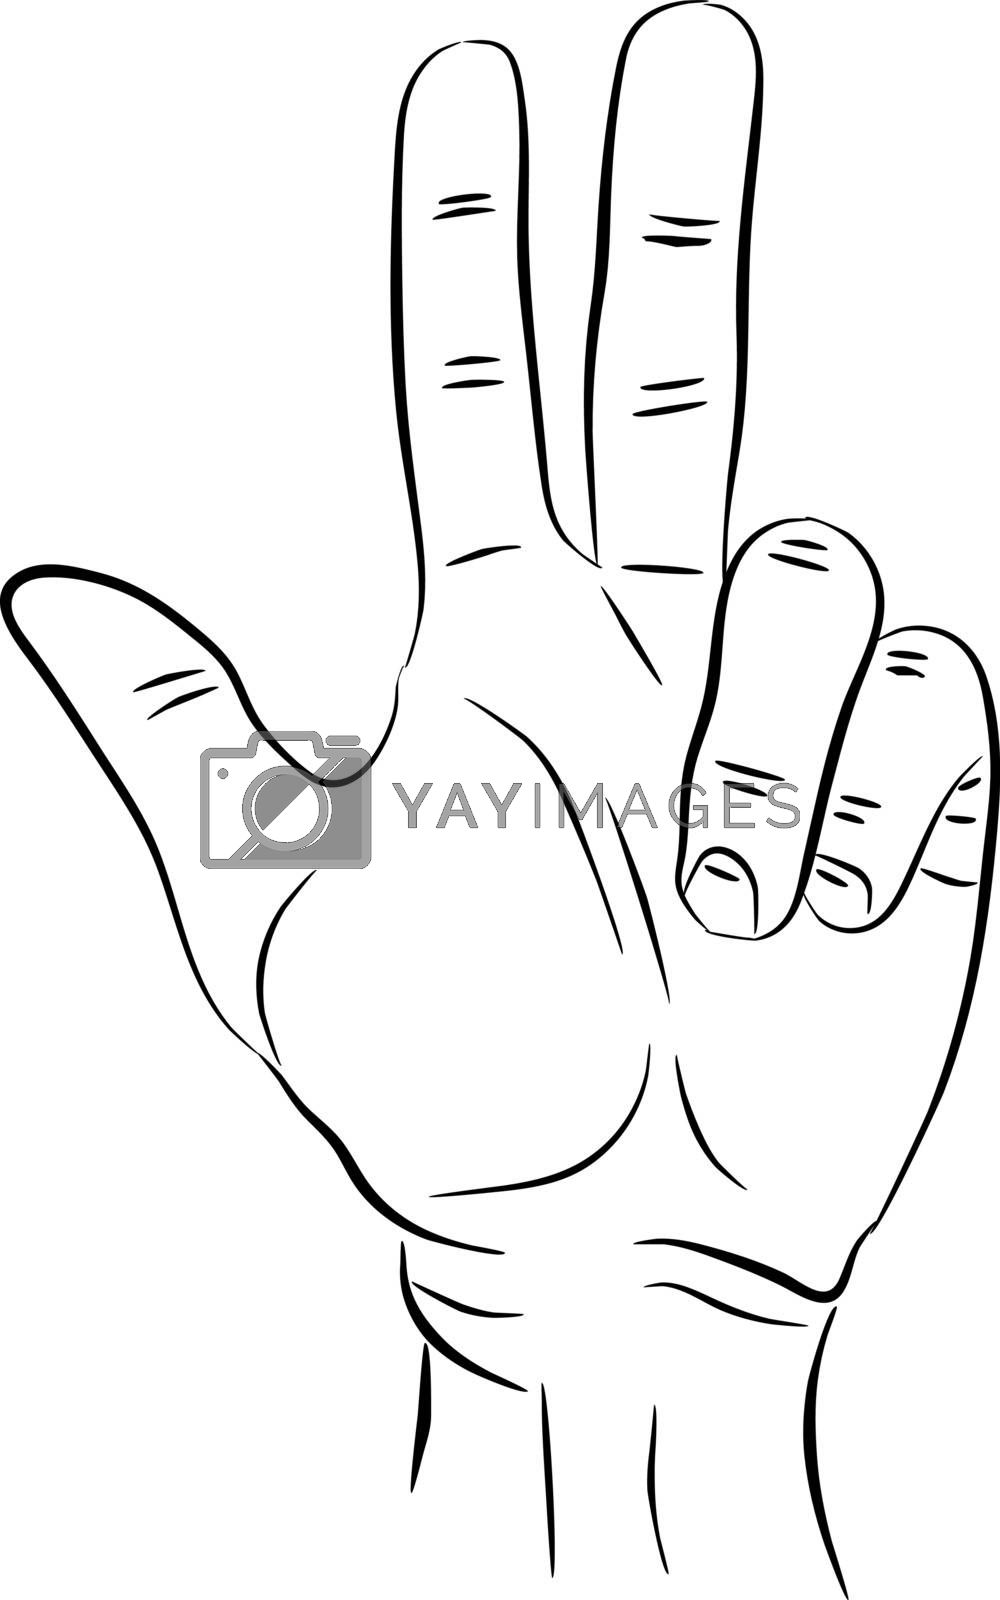 3 fingers icon. Three fingers up count gesture isolated vector Illustration. Can be used for logo or emblem in infographics or web sites and design. EPS